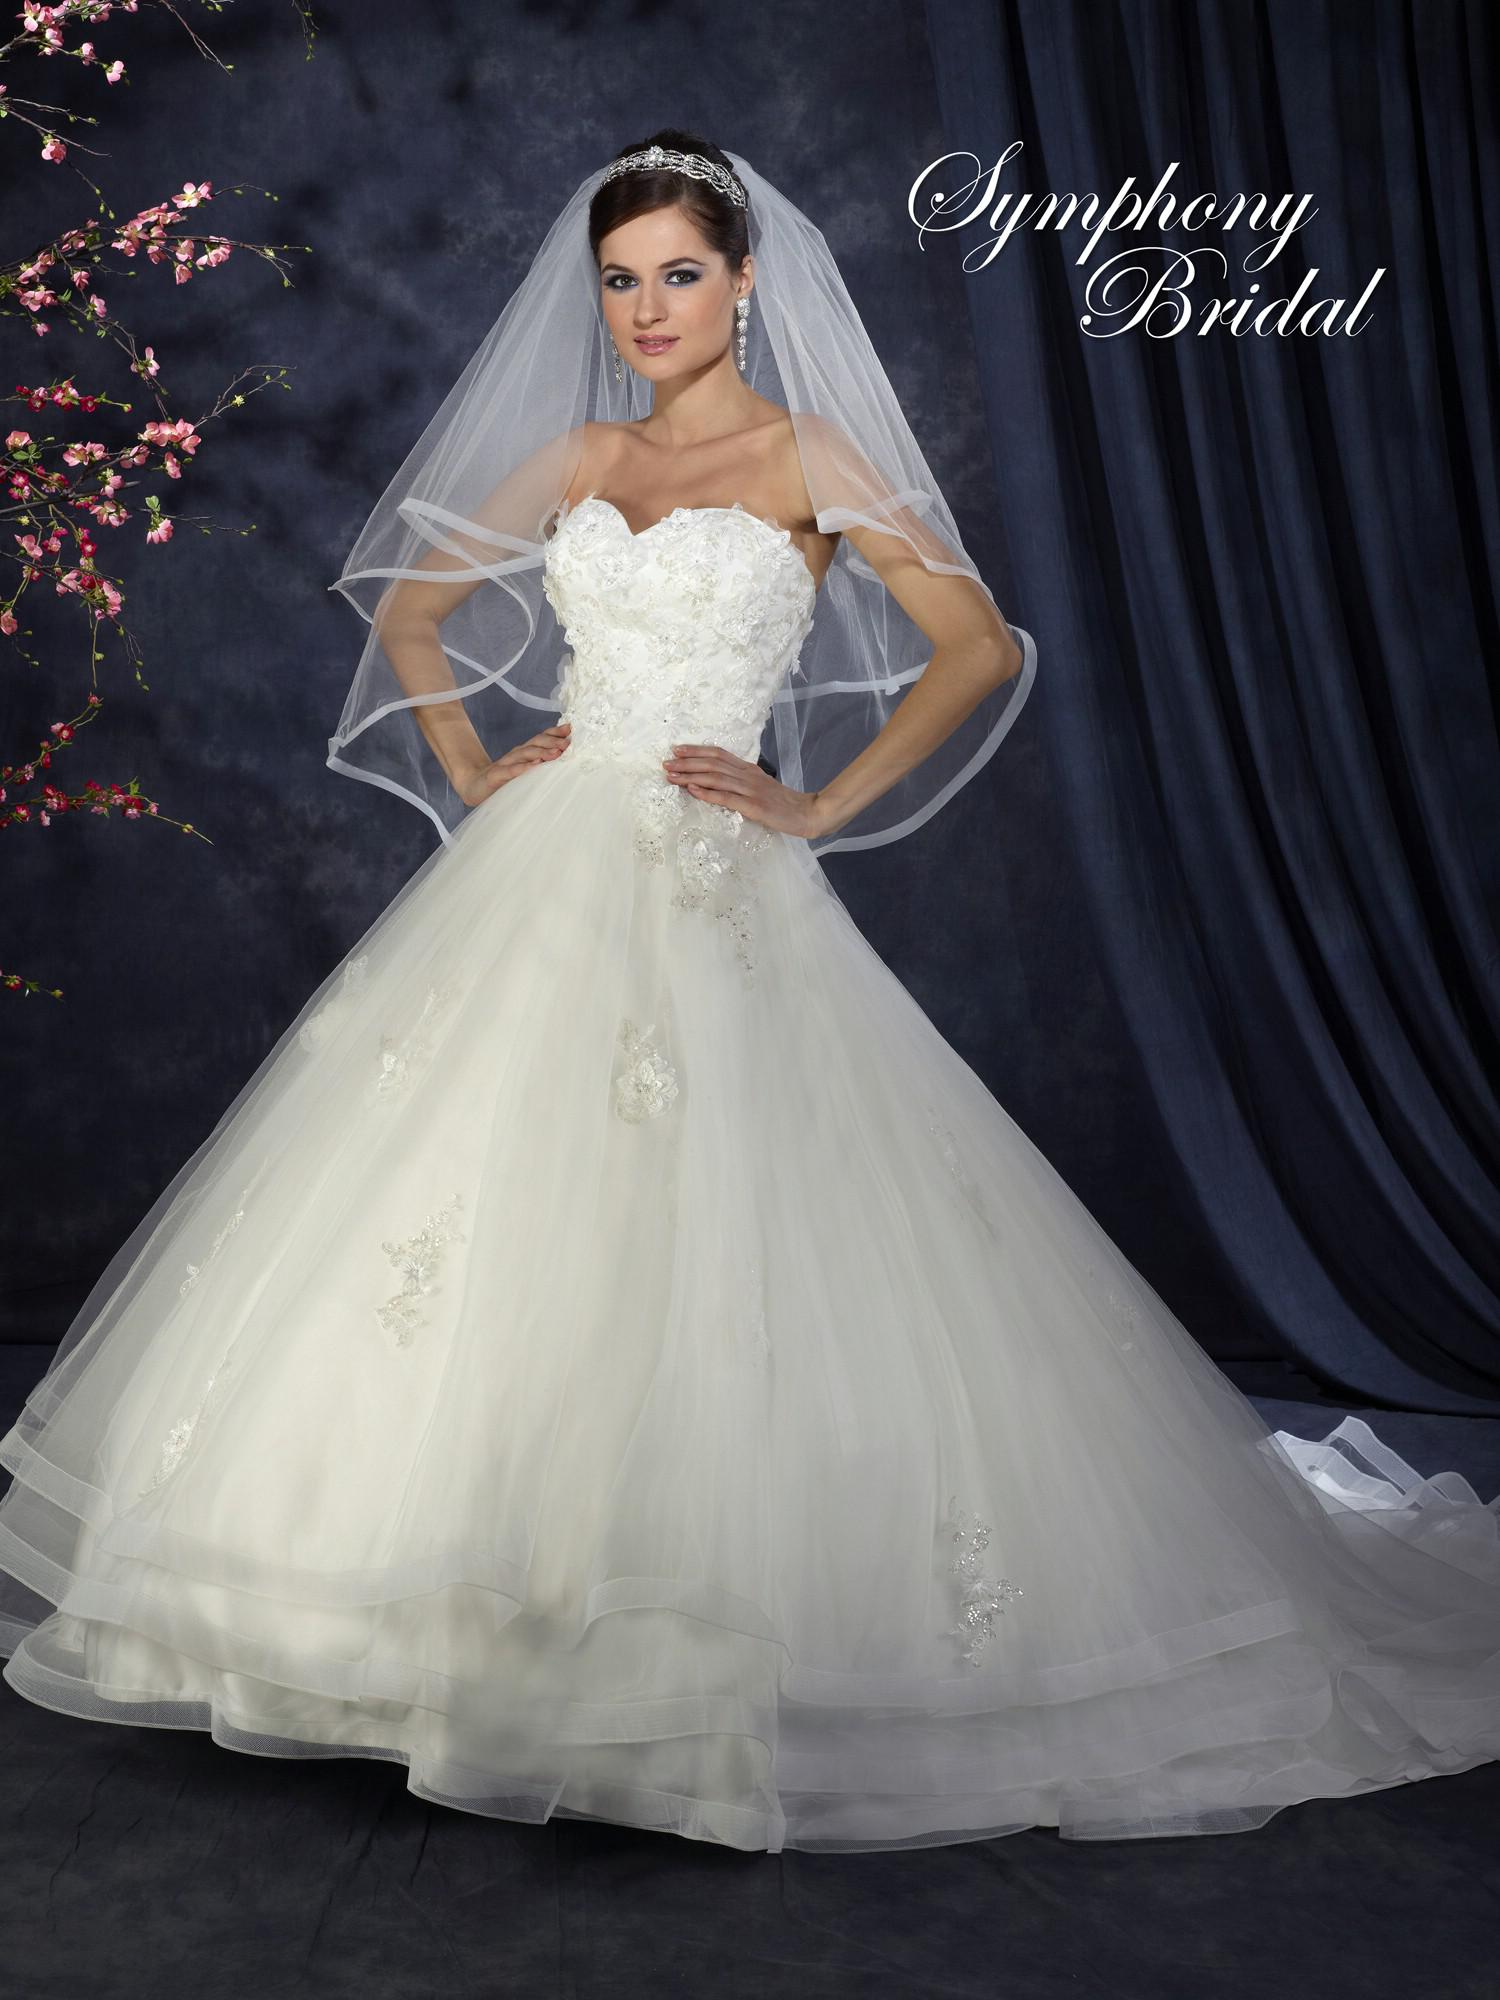 2014 Wedding Dresses Pnina Tornai Ball Gown Sweetheart Bling Bling Beaded Lace Up at Back Handmade Flowe Chapel Train Bridal Gowns